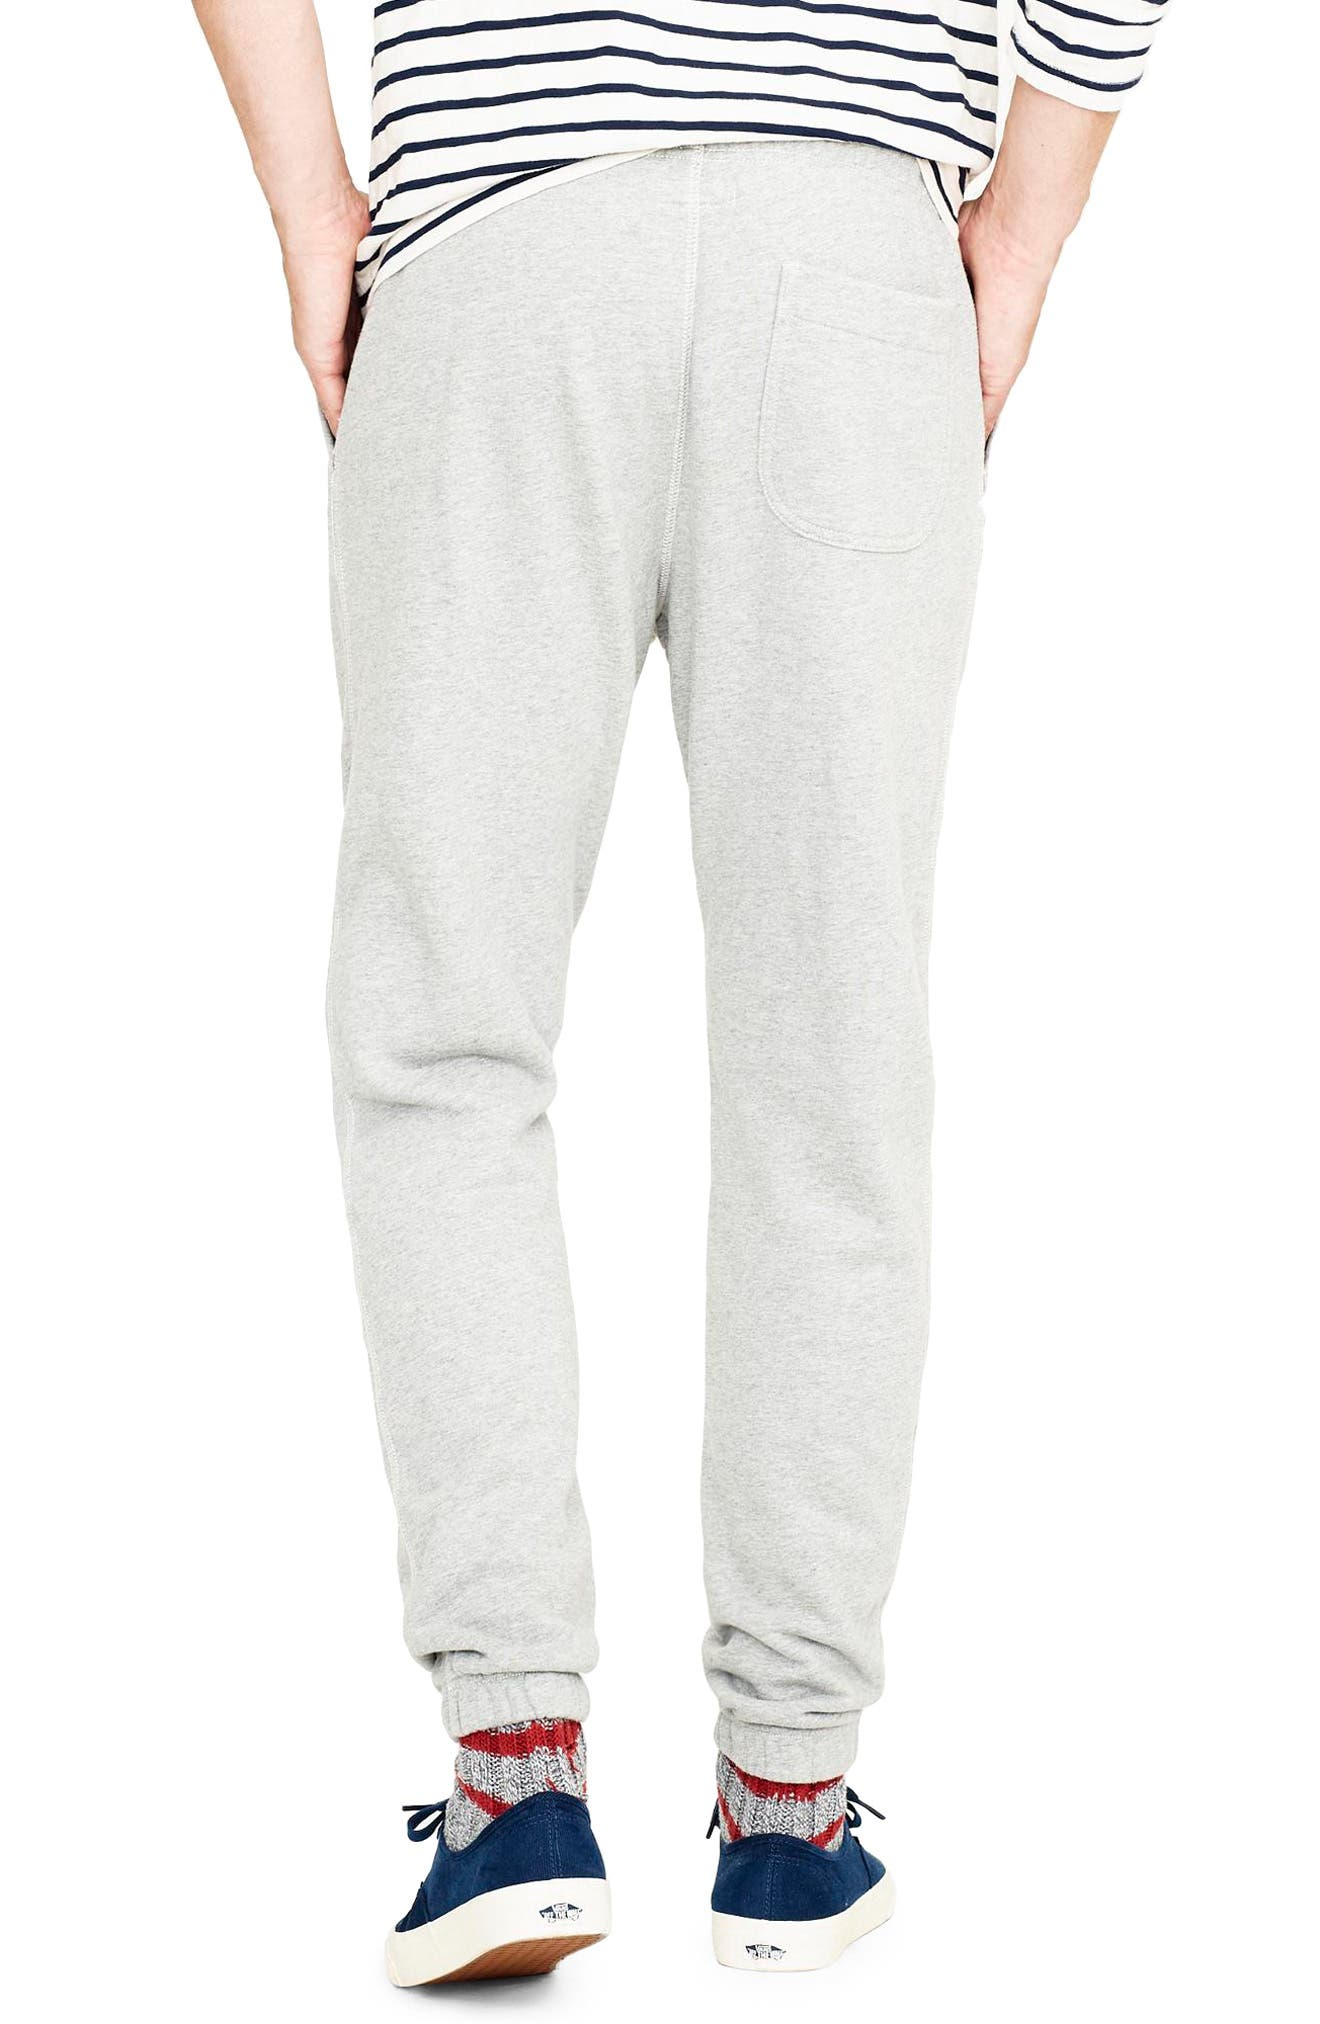 French Terry Sweatpants,                             Alternate thumbnail 2, color,                             HEATHER GREY